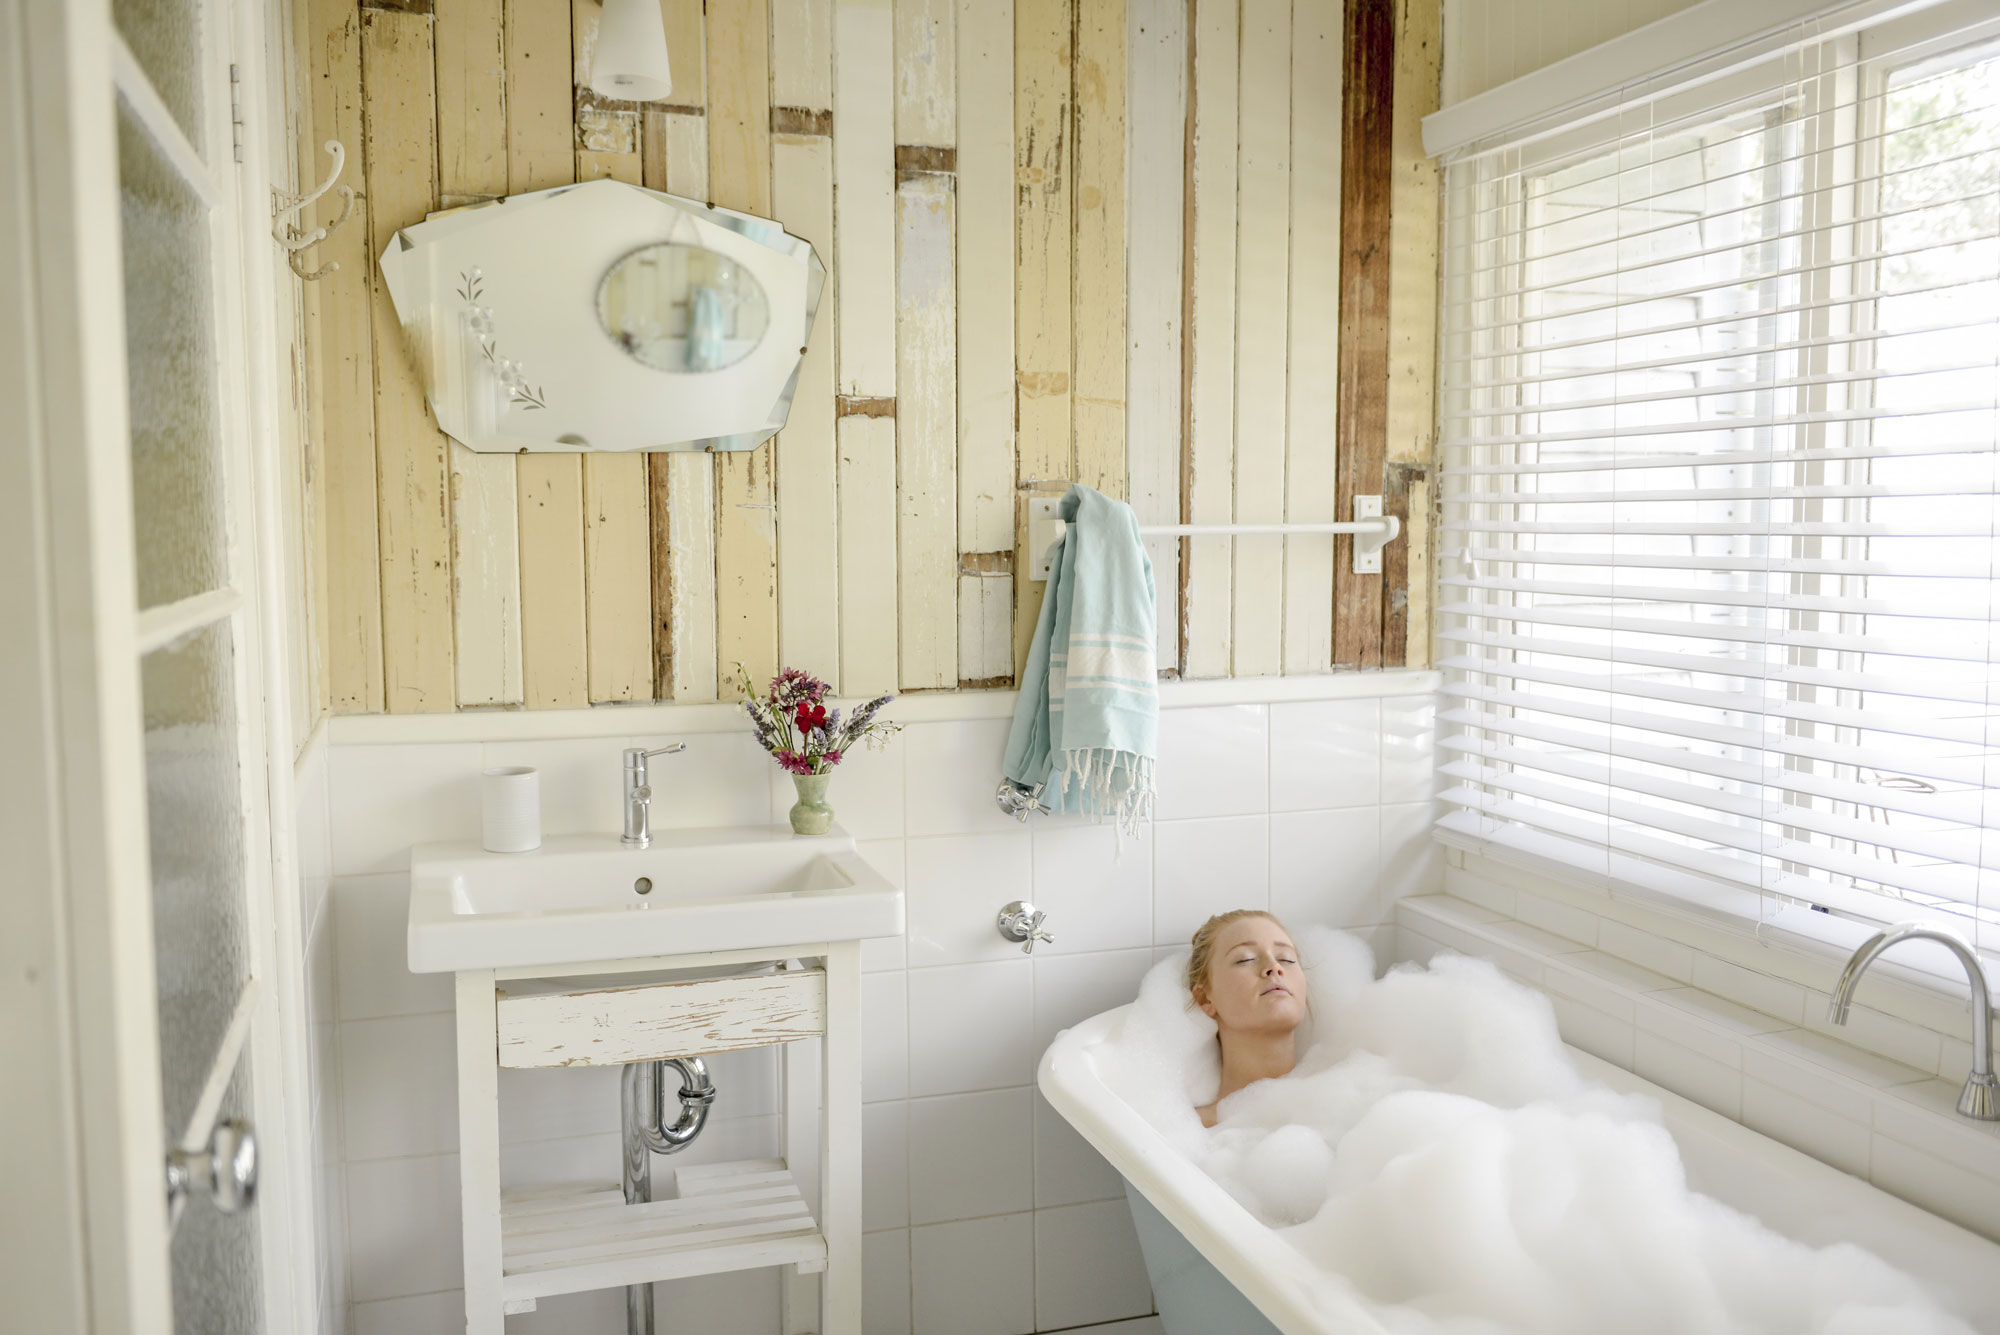 Relaxing bath at huskisson bnb